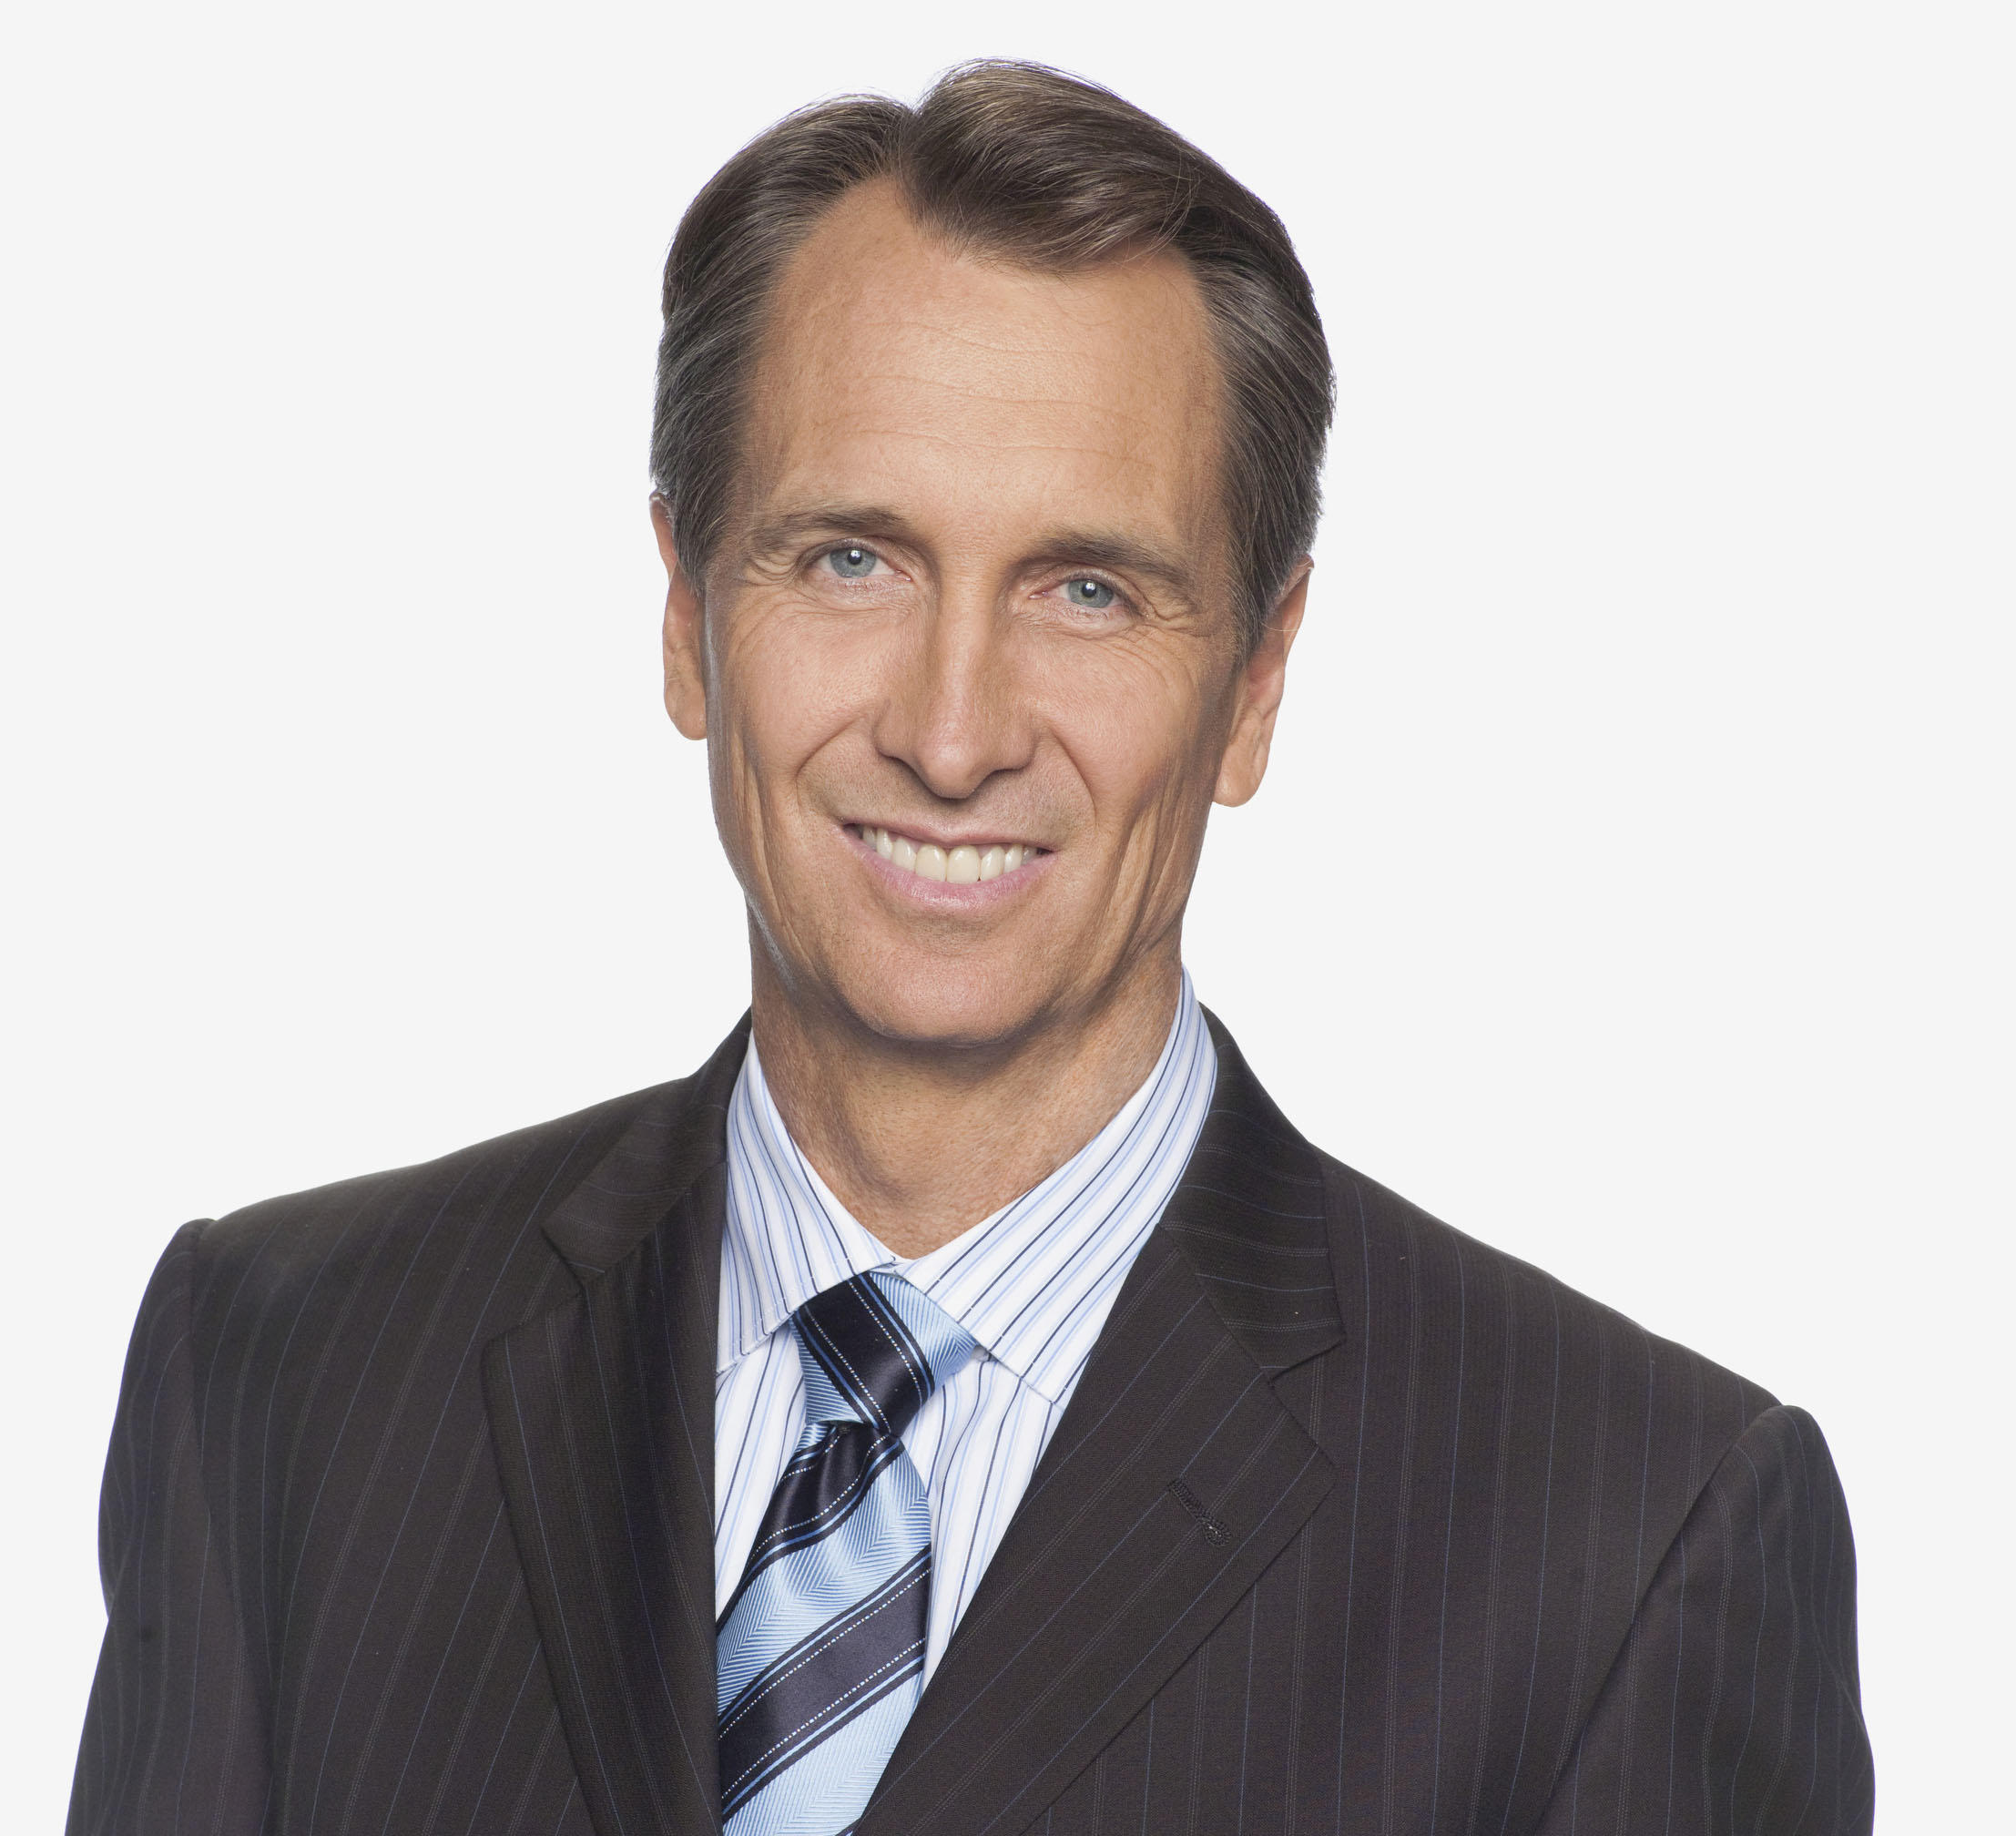 NFL Star Cris Collinsworth Torn Between Career & Family ... |Cris Collinsworth